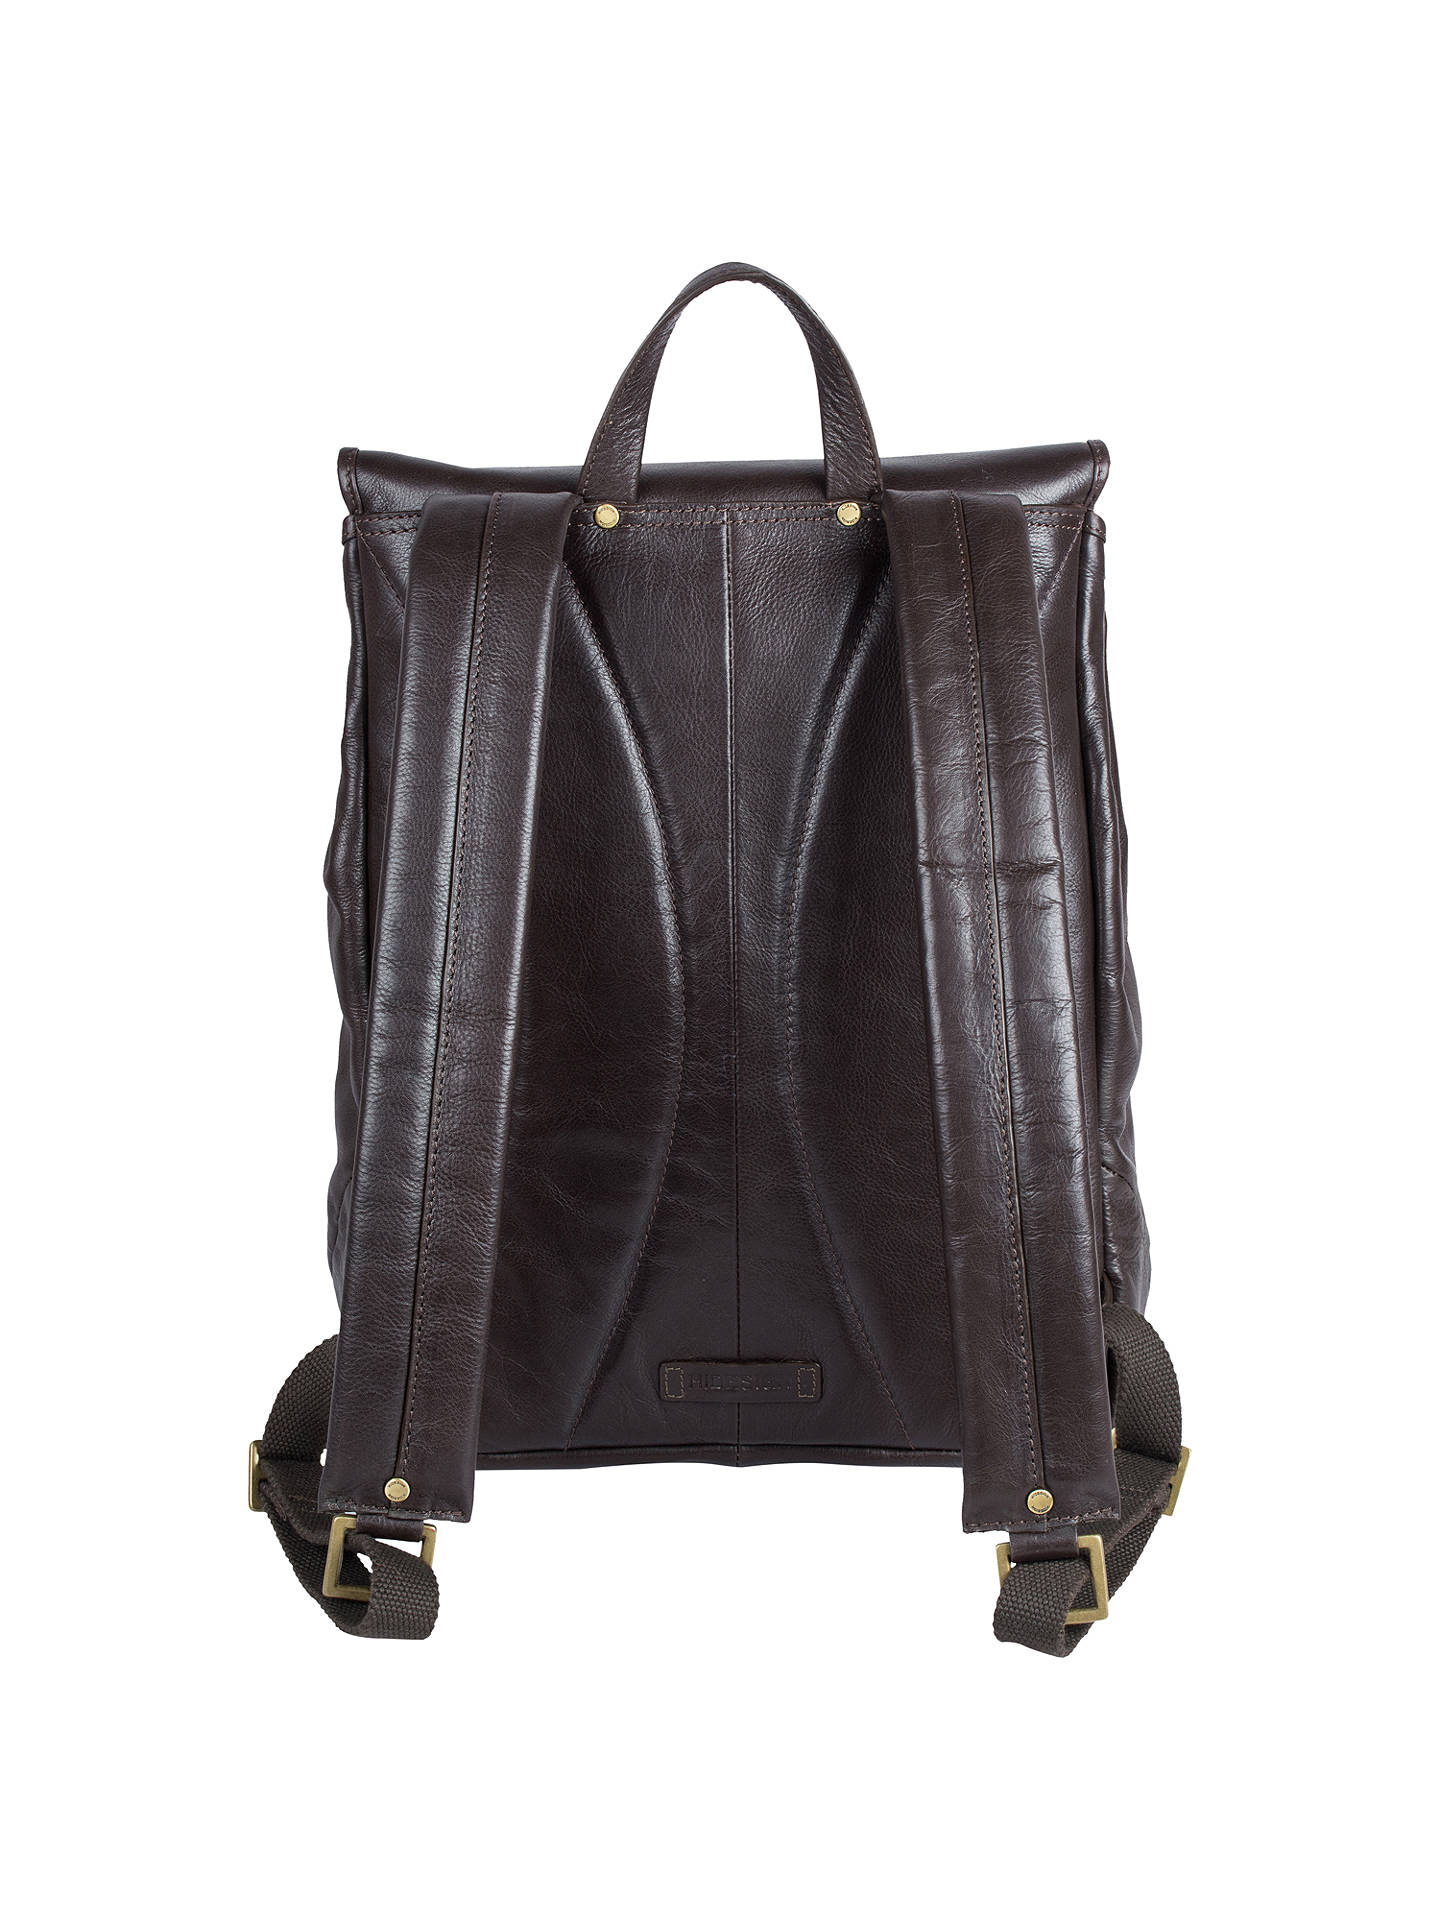 BuyHidesign Craig 01 Leather Backpack, Brown Online at johnlewis.com